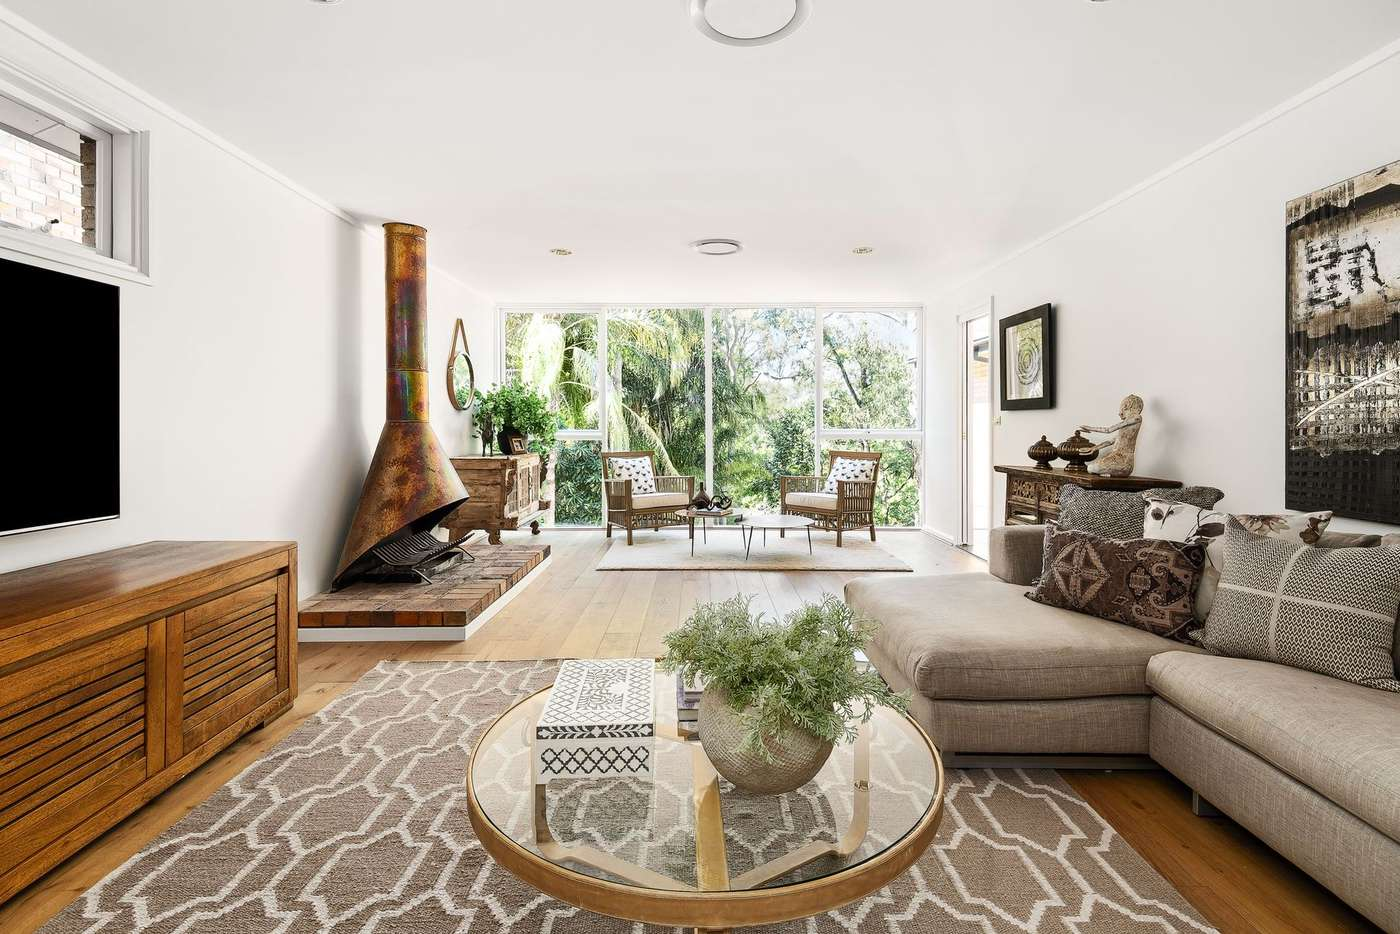 Main view of Homely house listing, 31 Wentworth Avenue, East Killara NSW 2071